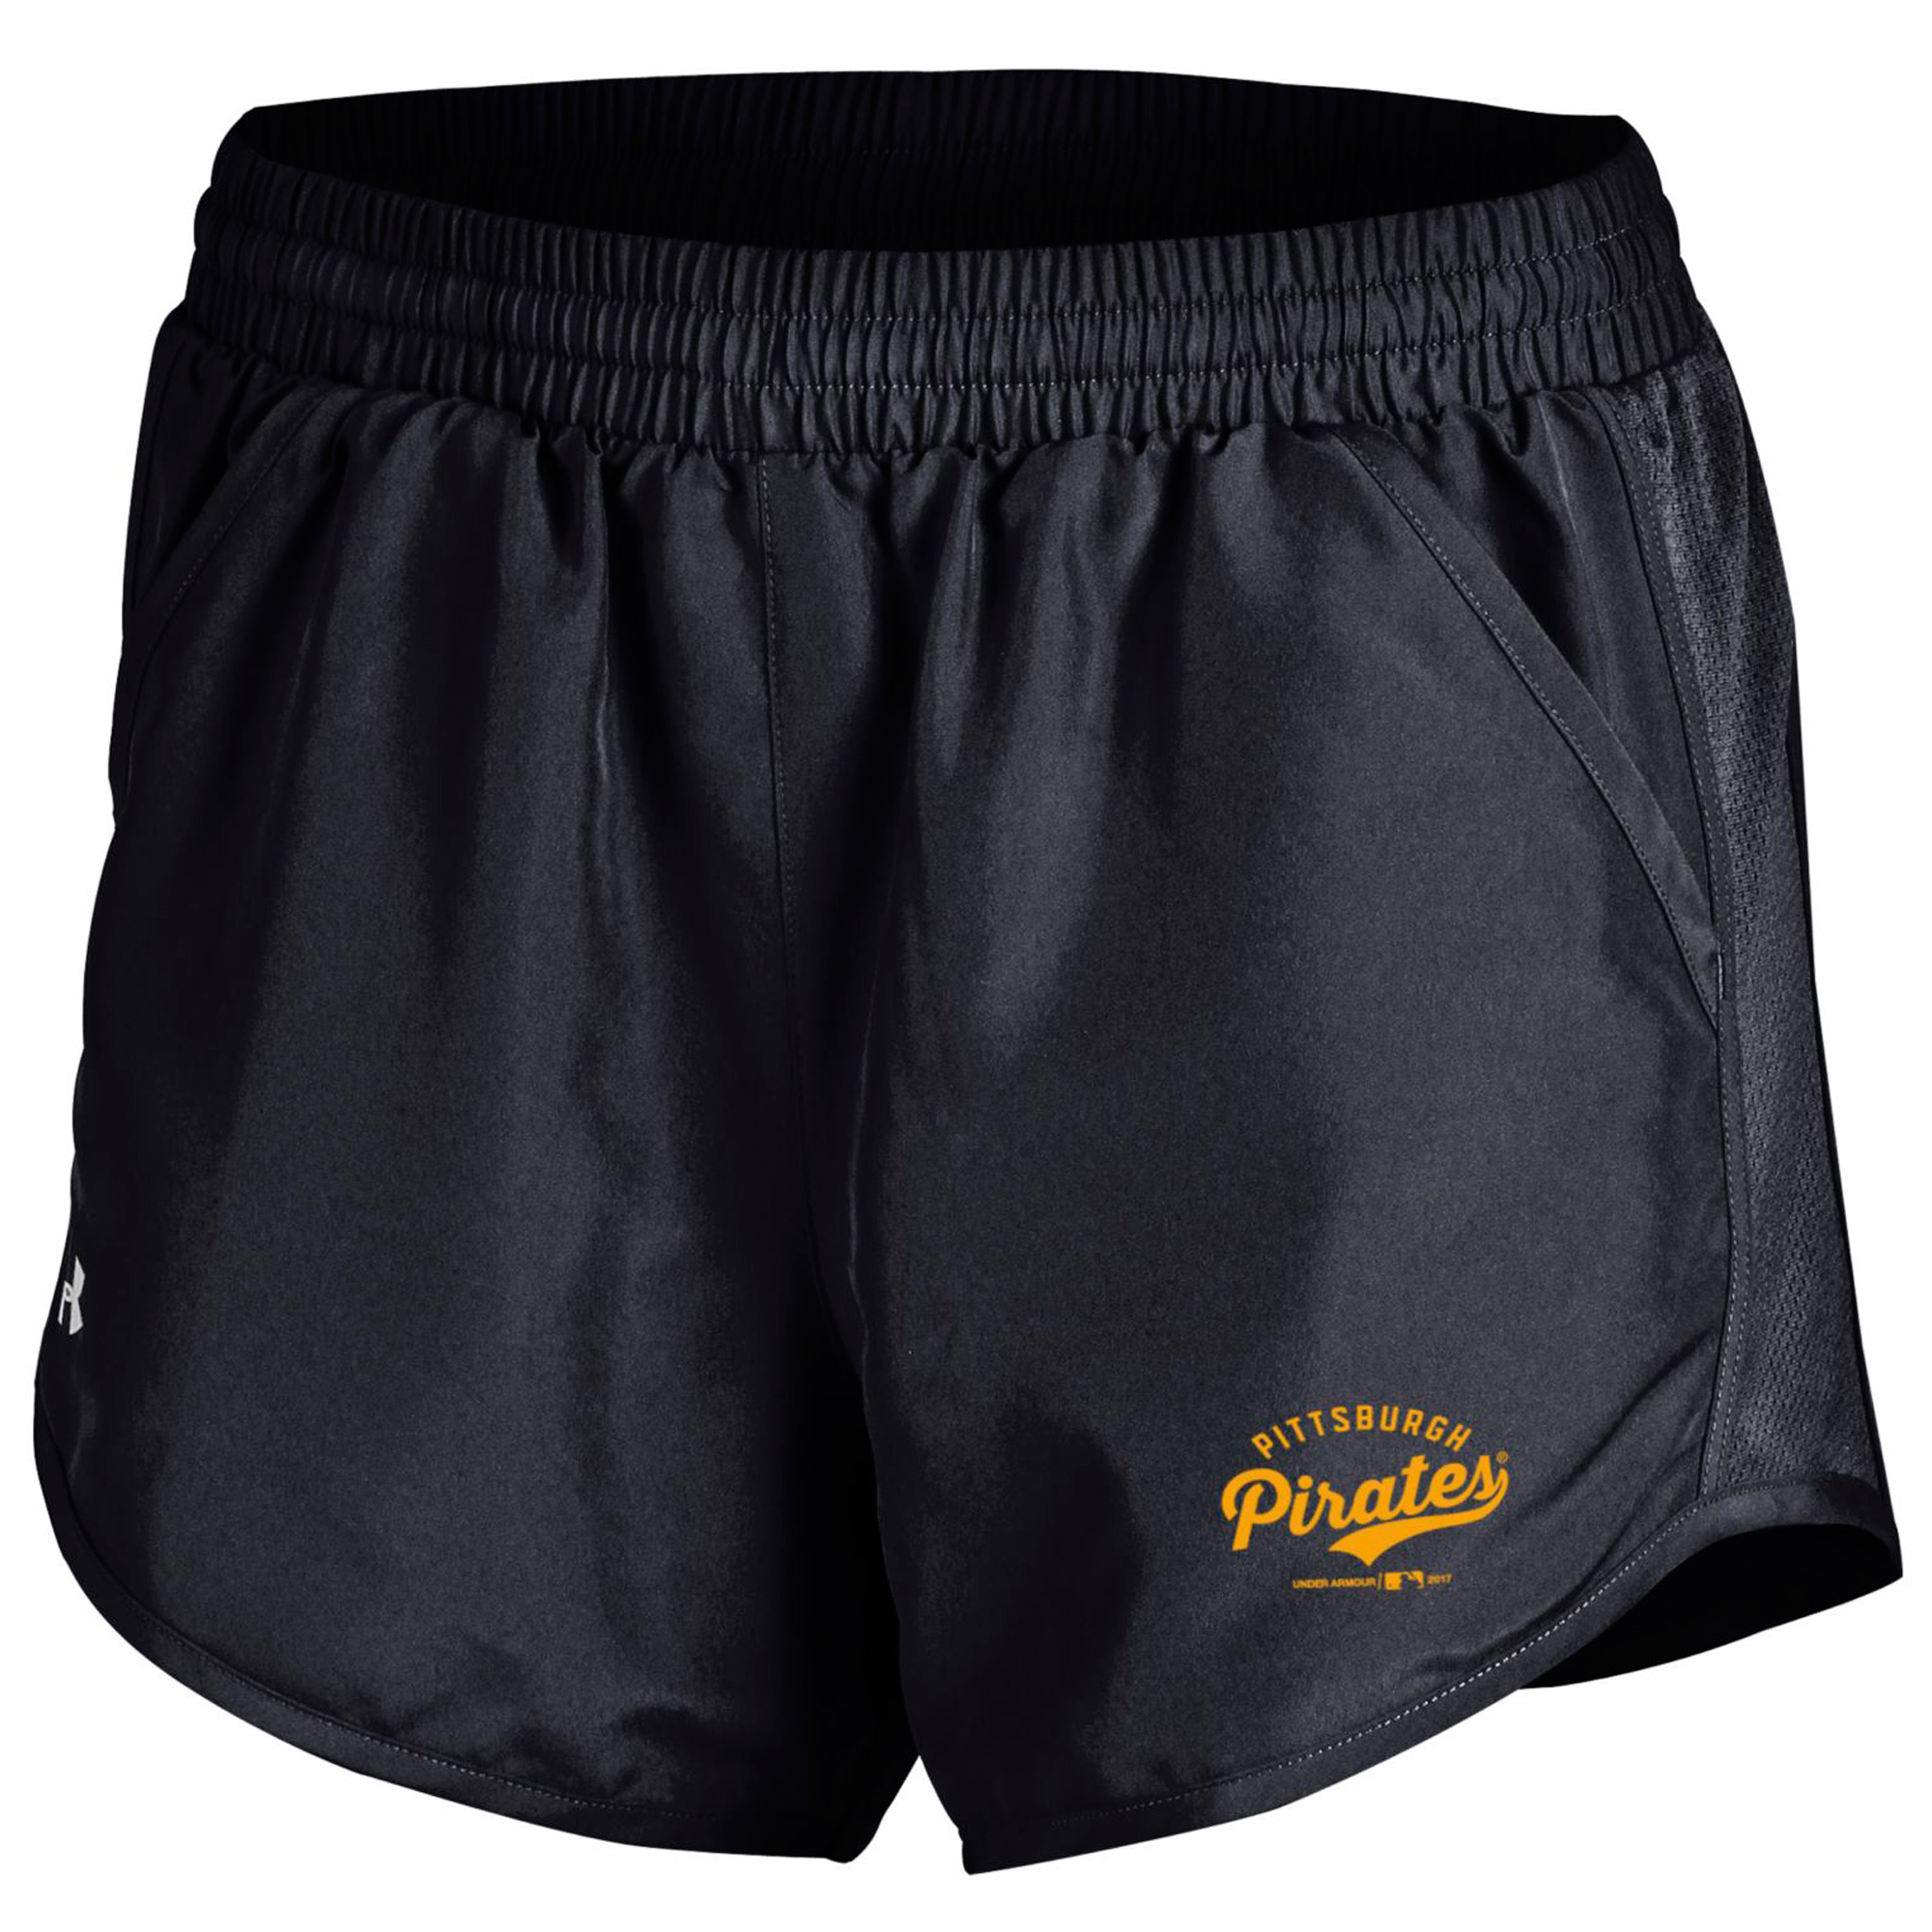 Pittsburgh Pirates Under Armour Women's Fly By Running Shorts - Black